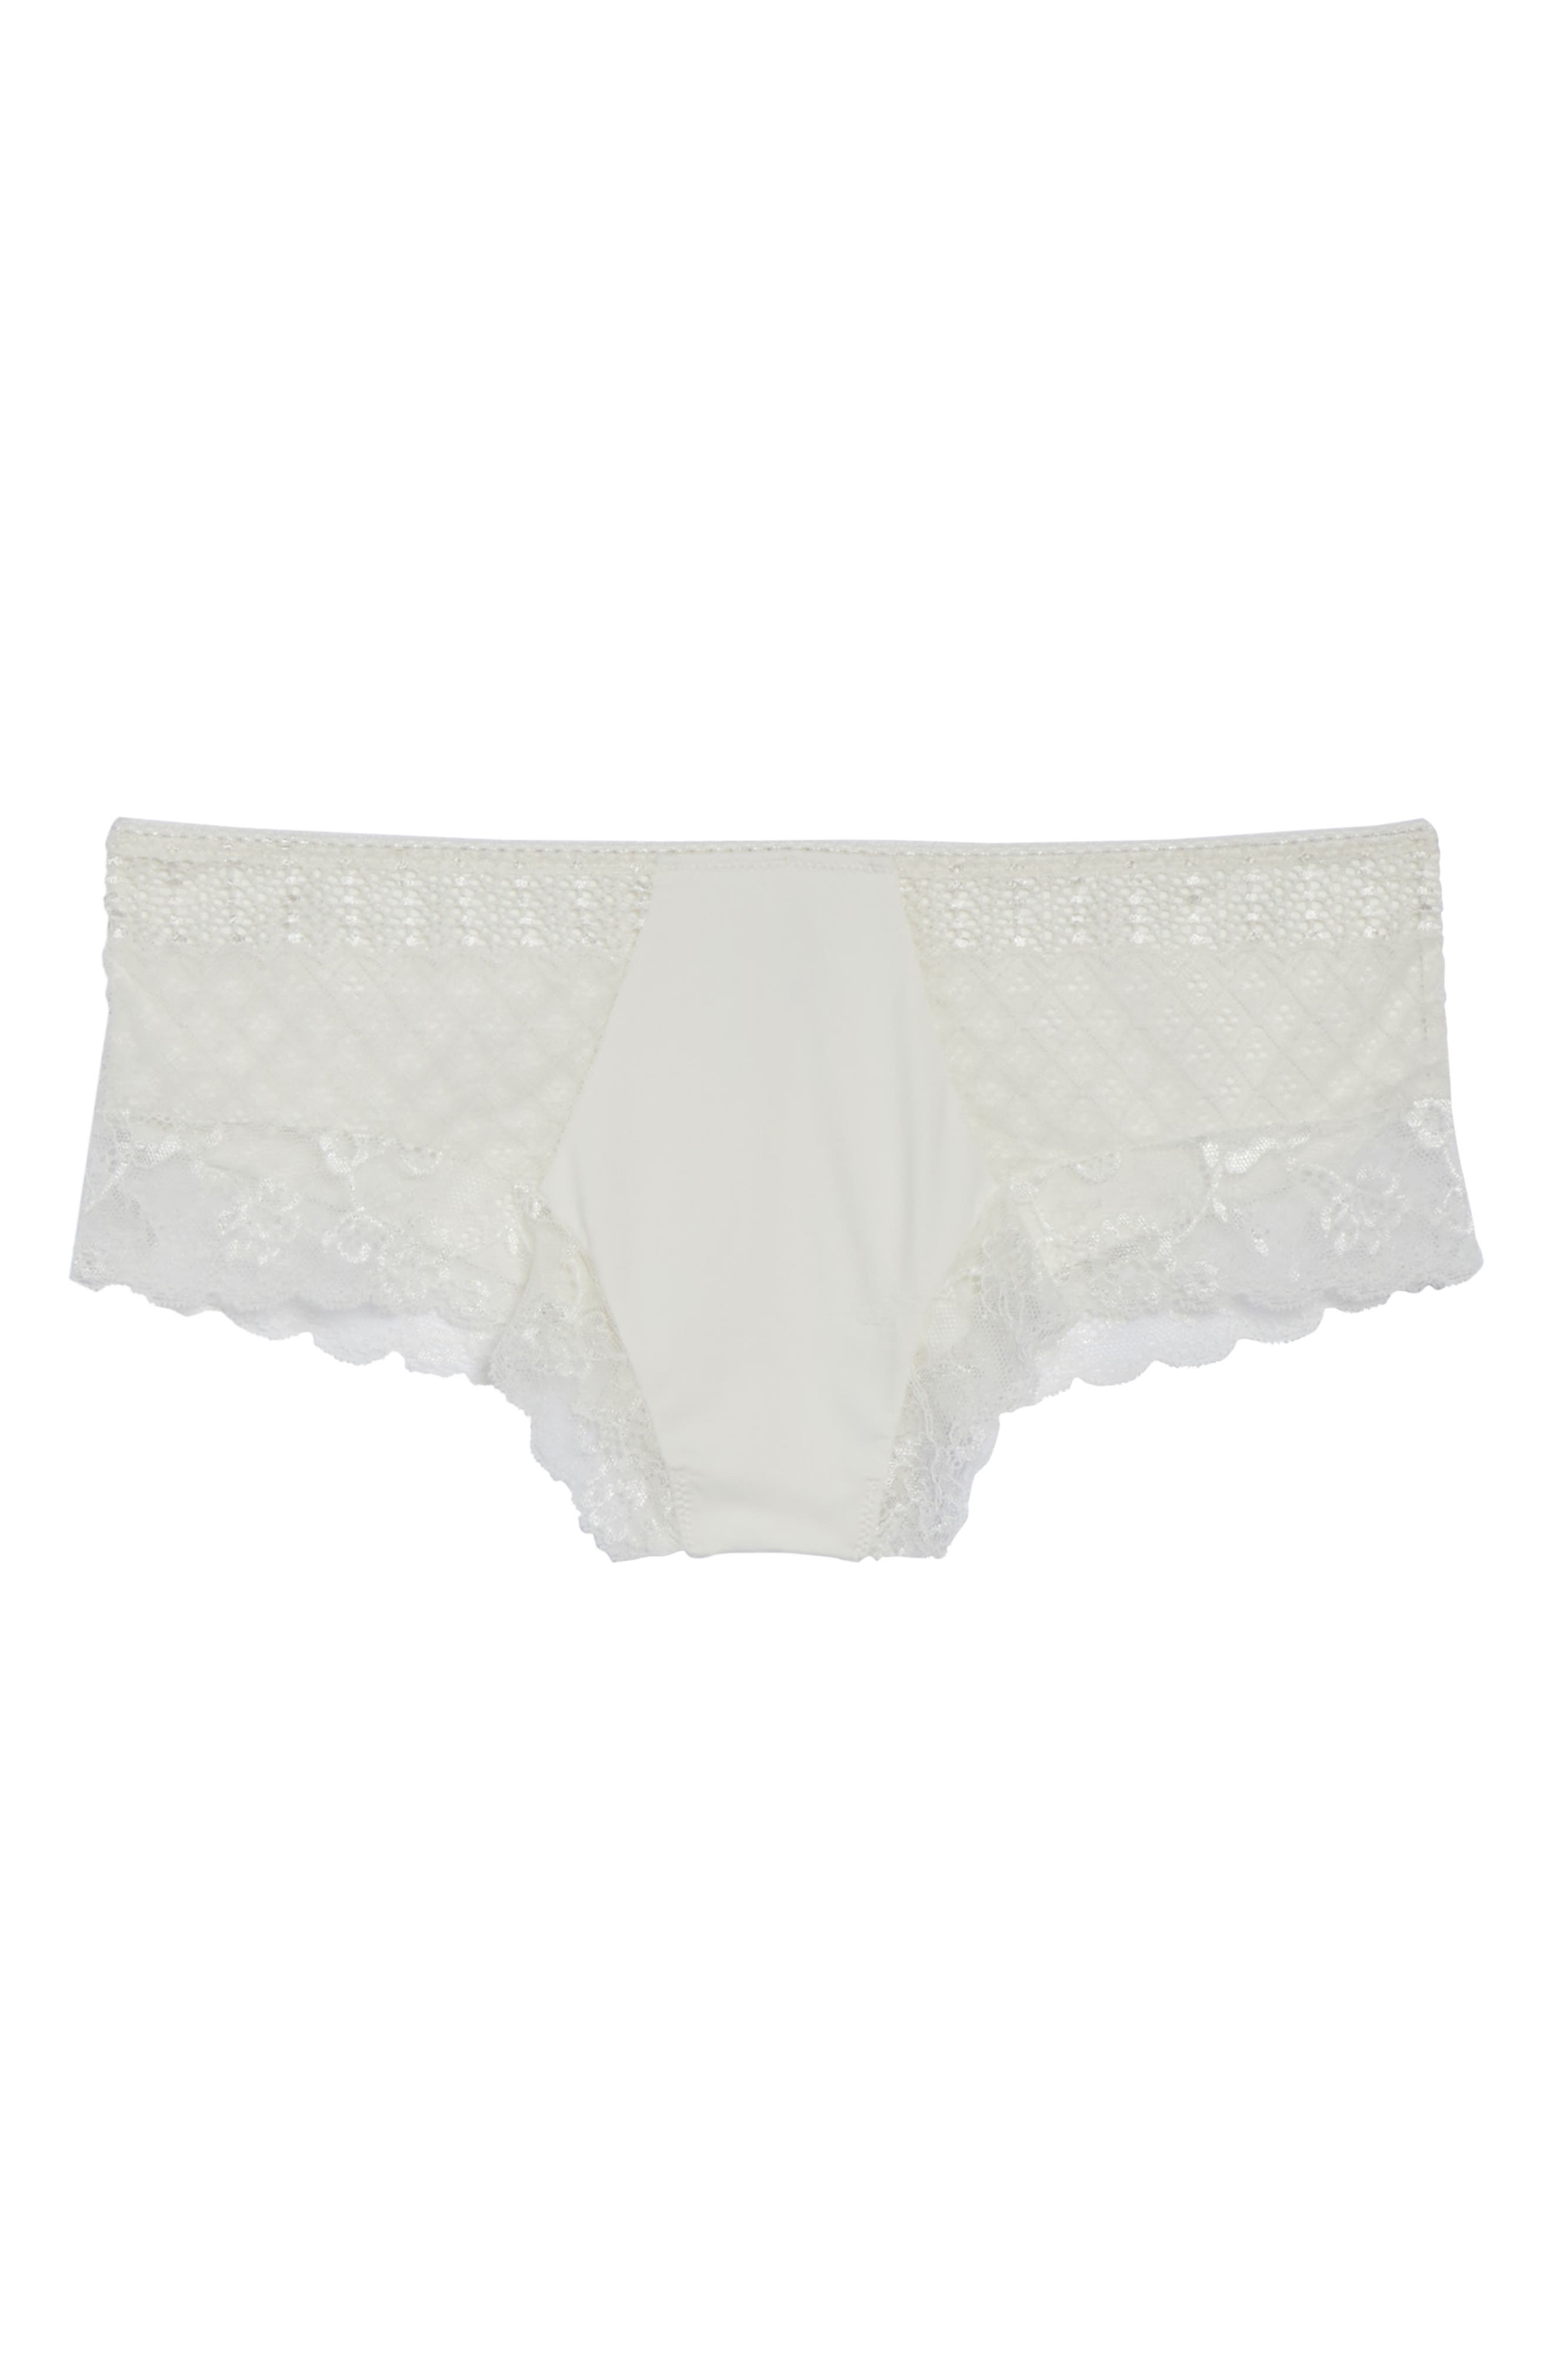 Honeydew Microfiber & Lace Hipster Panties,                             Alternate thumbnail 4, color,                             Ivory